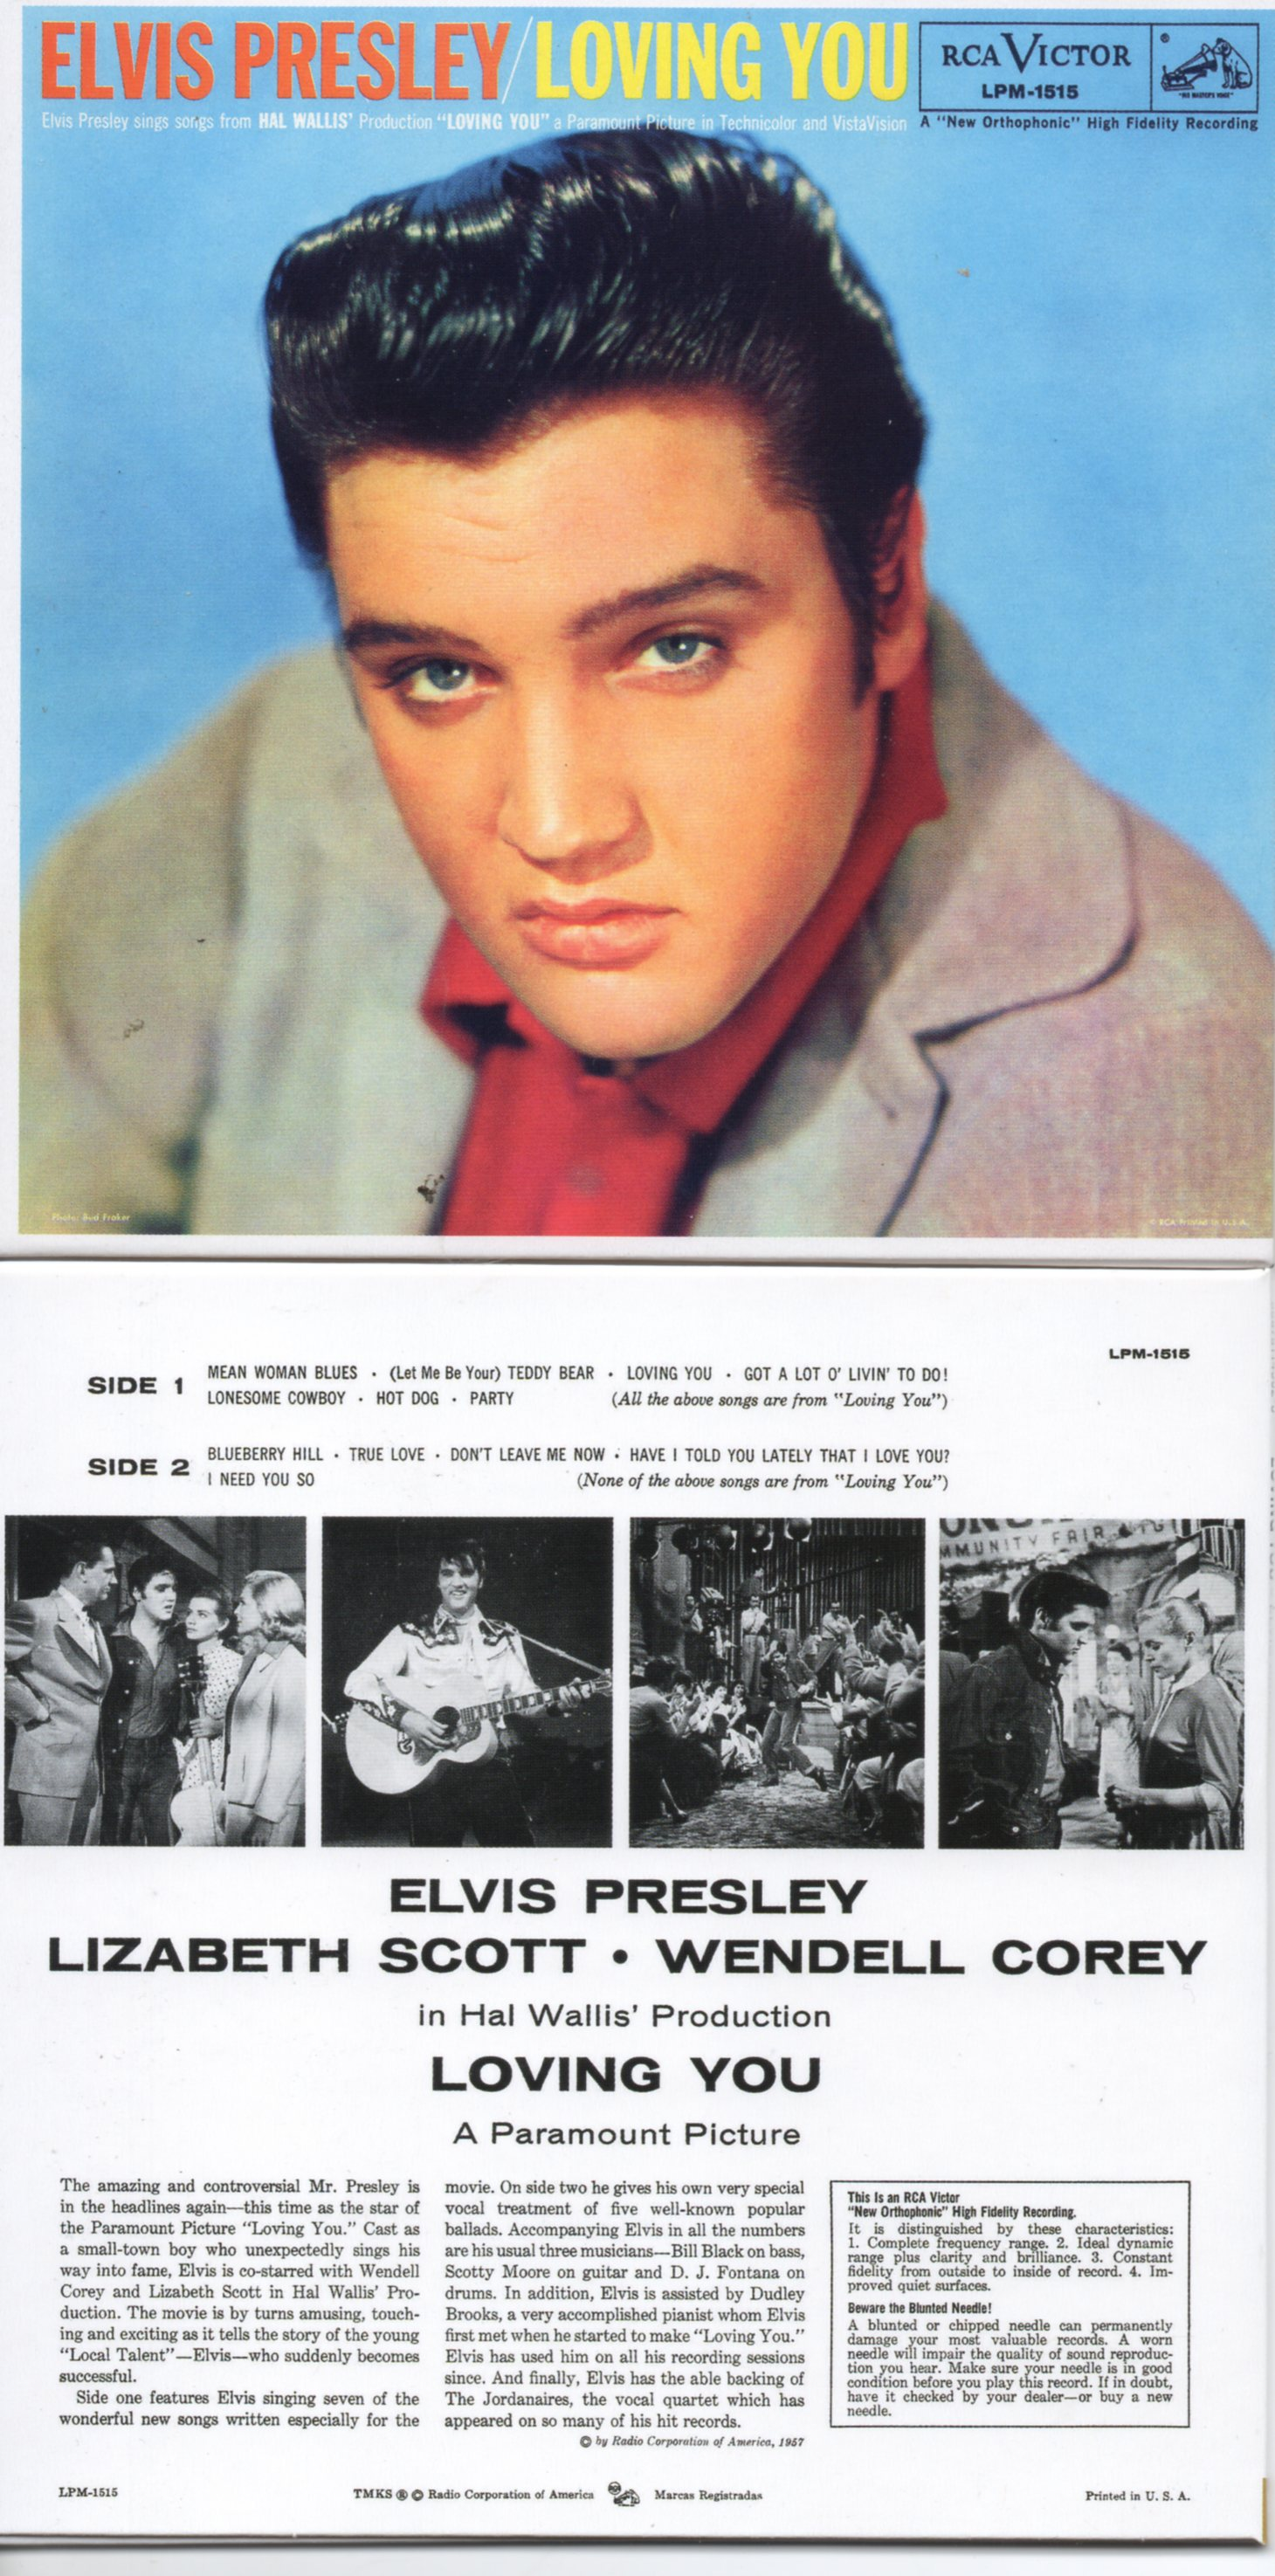 Elvis PRESLEY - Loving You (1957 - Mini Lp Replica - 13-track Card Sleeve)